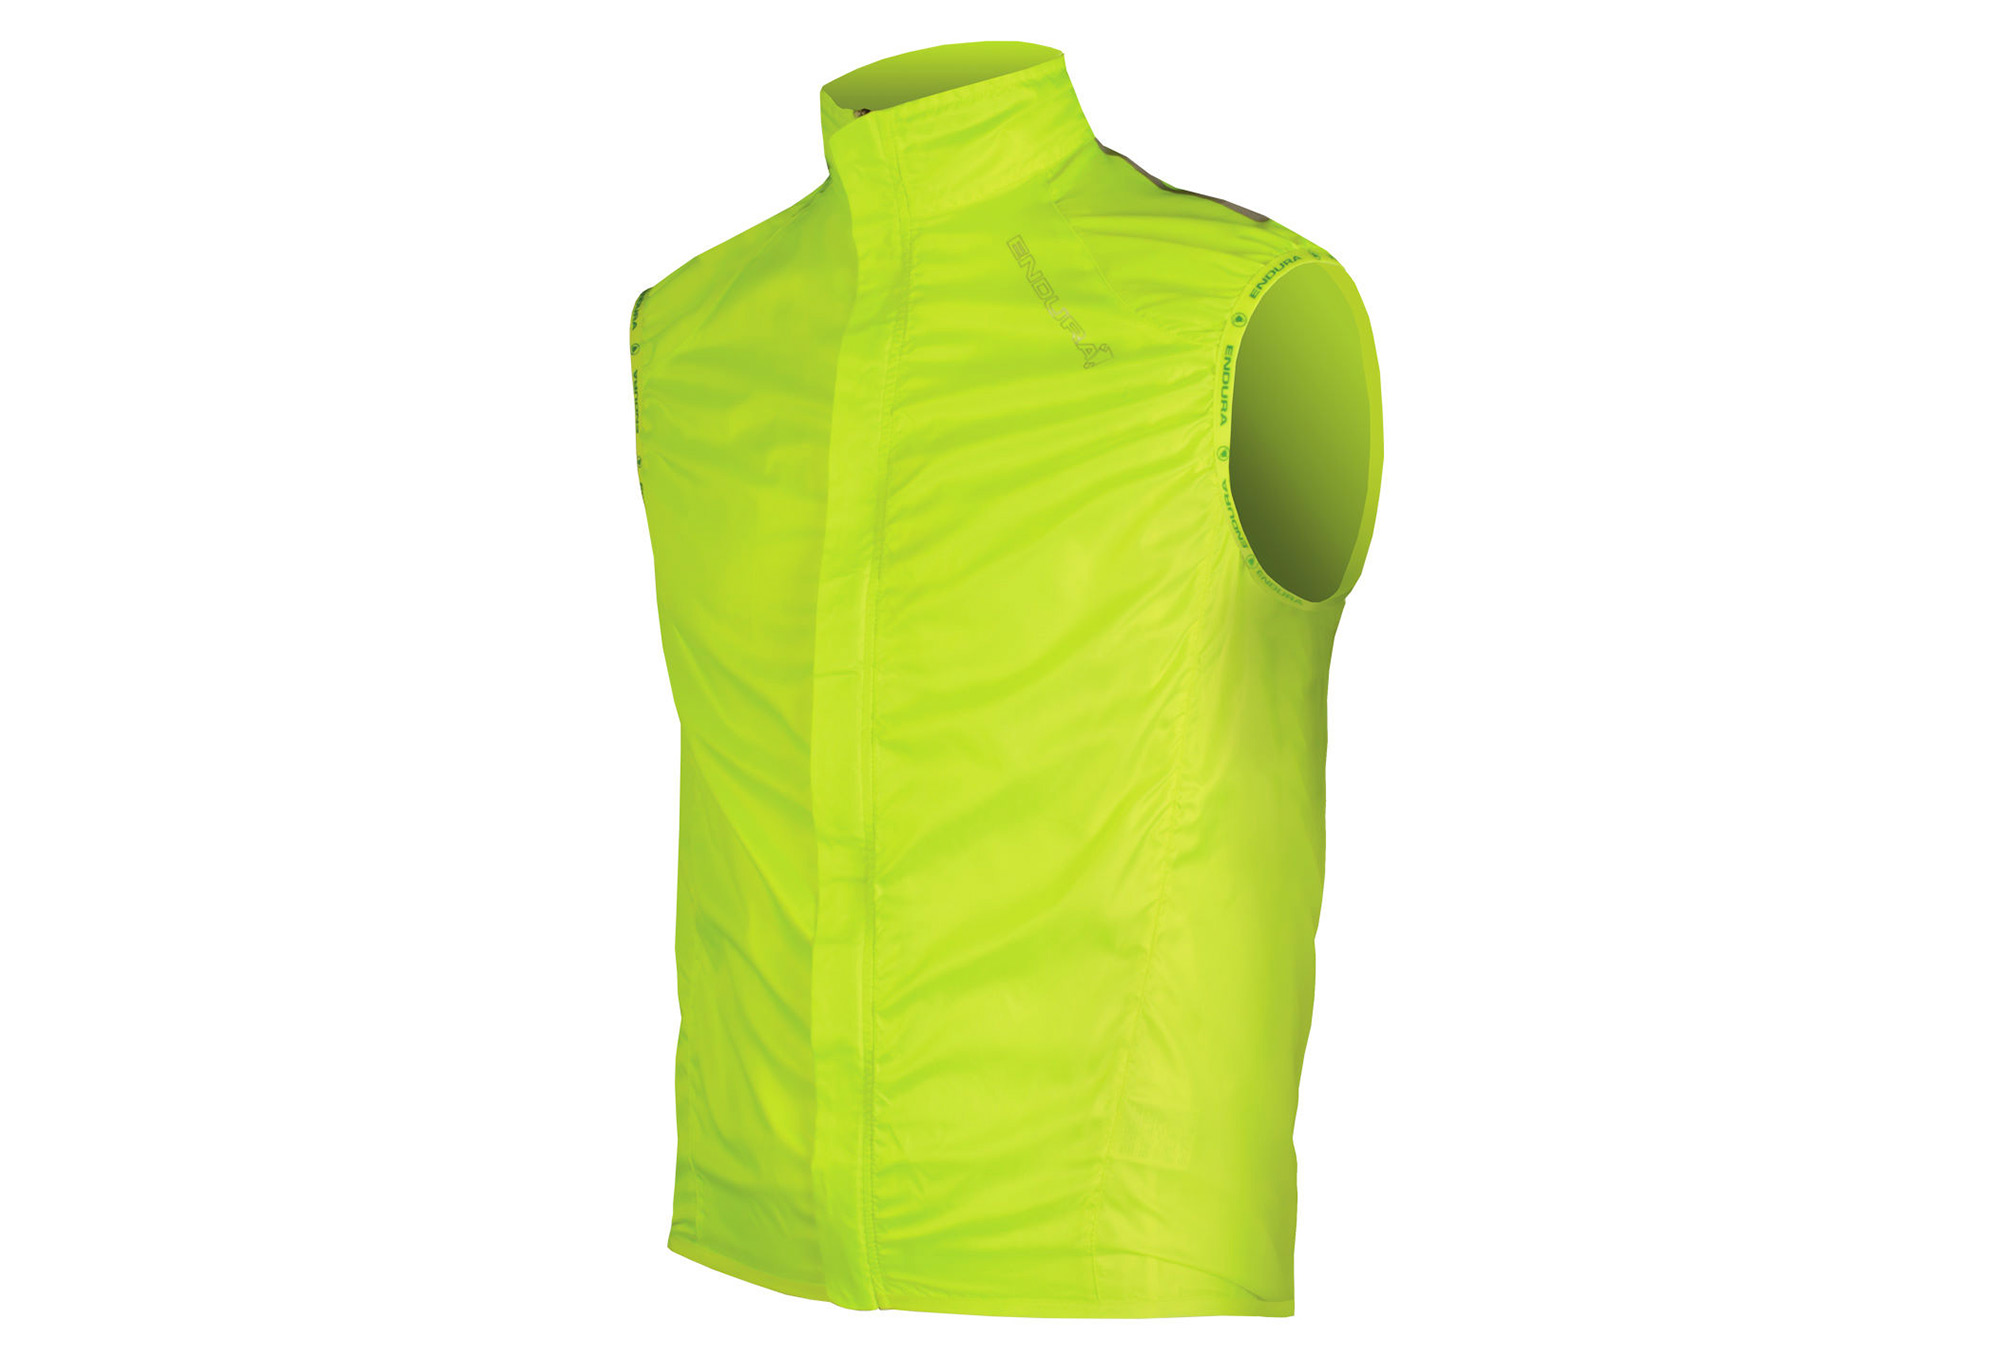 endura gilet compact sans manches pakagilet jaune fluo. Black Bedroom Furniture Sets. Home Design Ideas